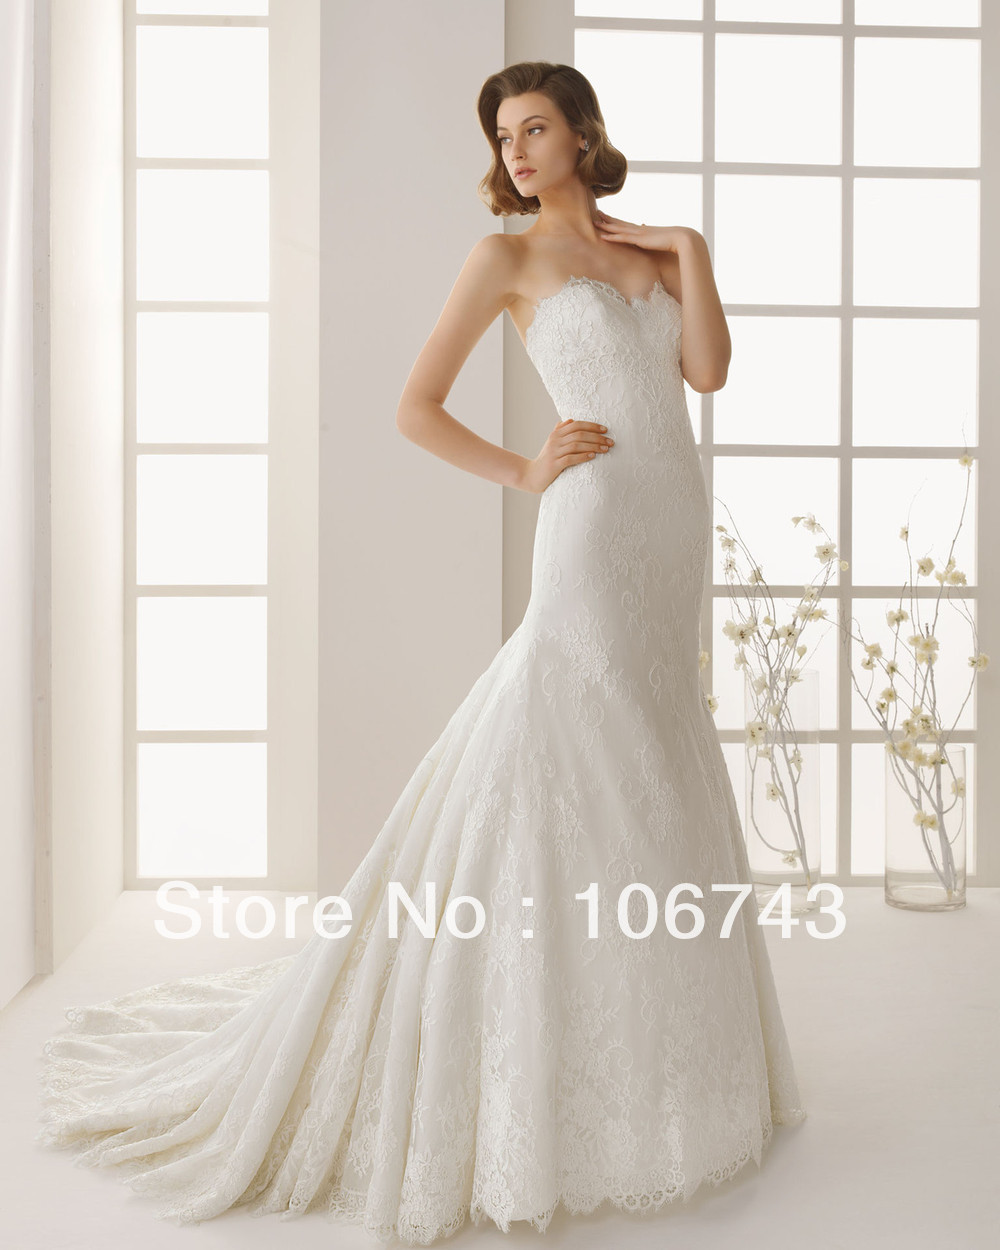 Free Shipping 2018 Sexy Brides Sweetheart Princess Lace Bridal Gown With Jacket Custom Bridal Gown Mother Of The Bride Dresses